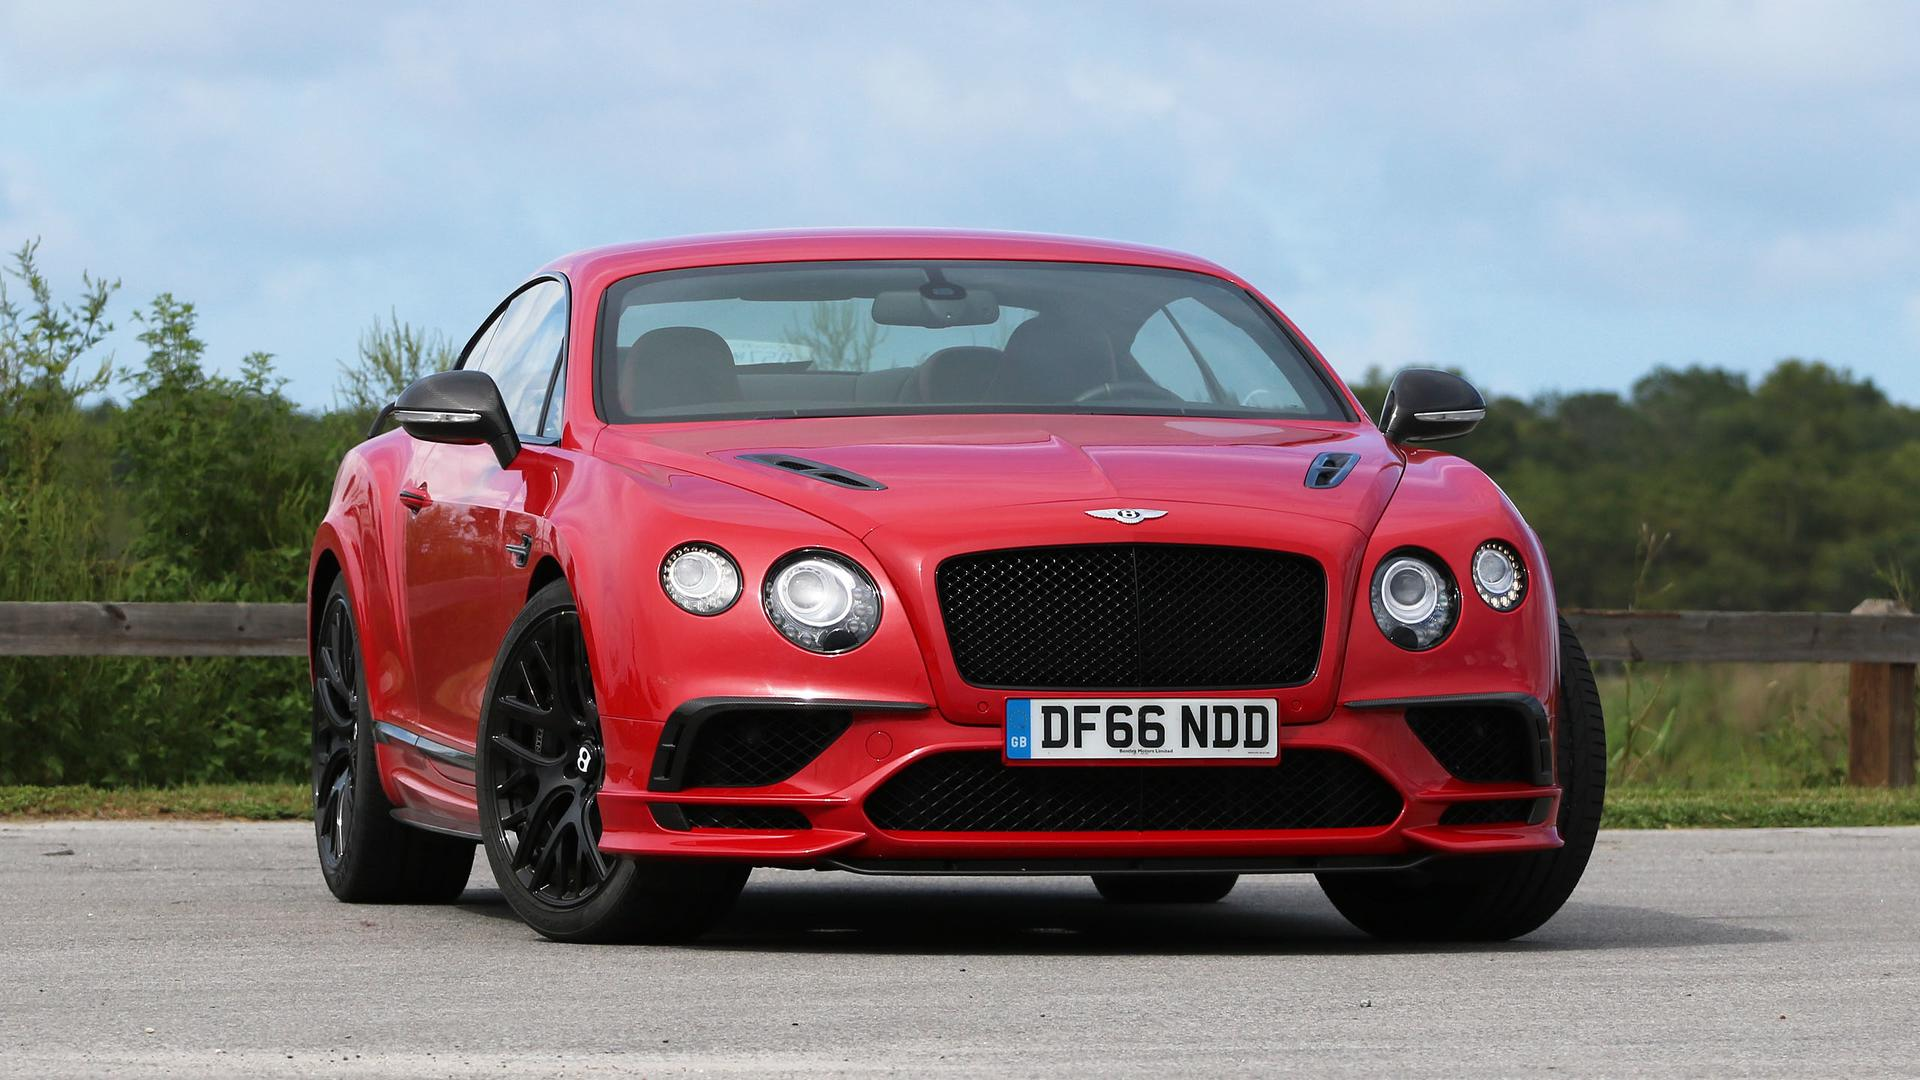 a cars in the coupe bentley revealed continental sport release brawny news gt trans grand new price prices pictures british specs tourer